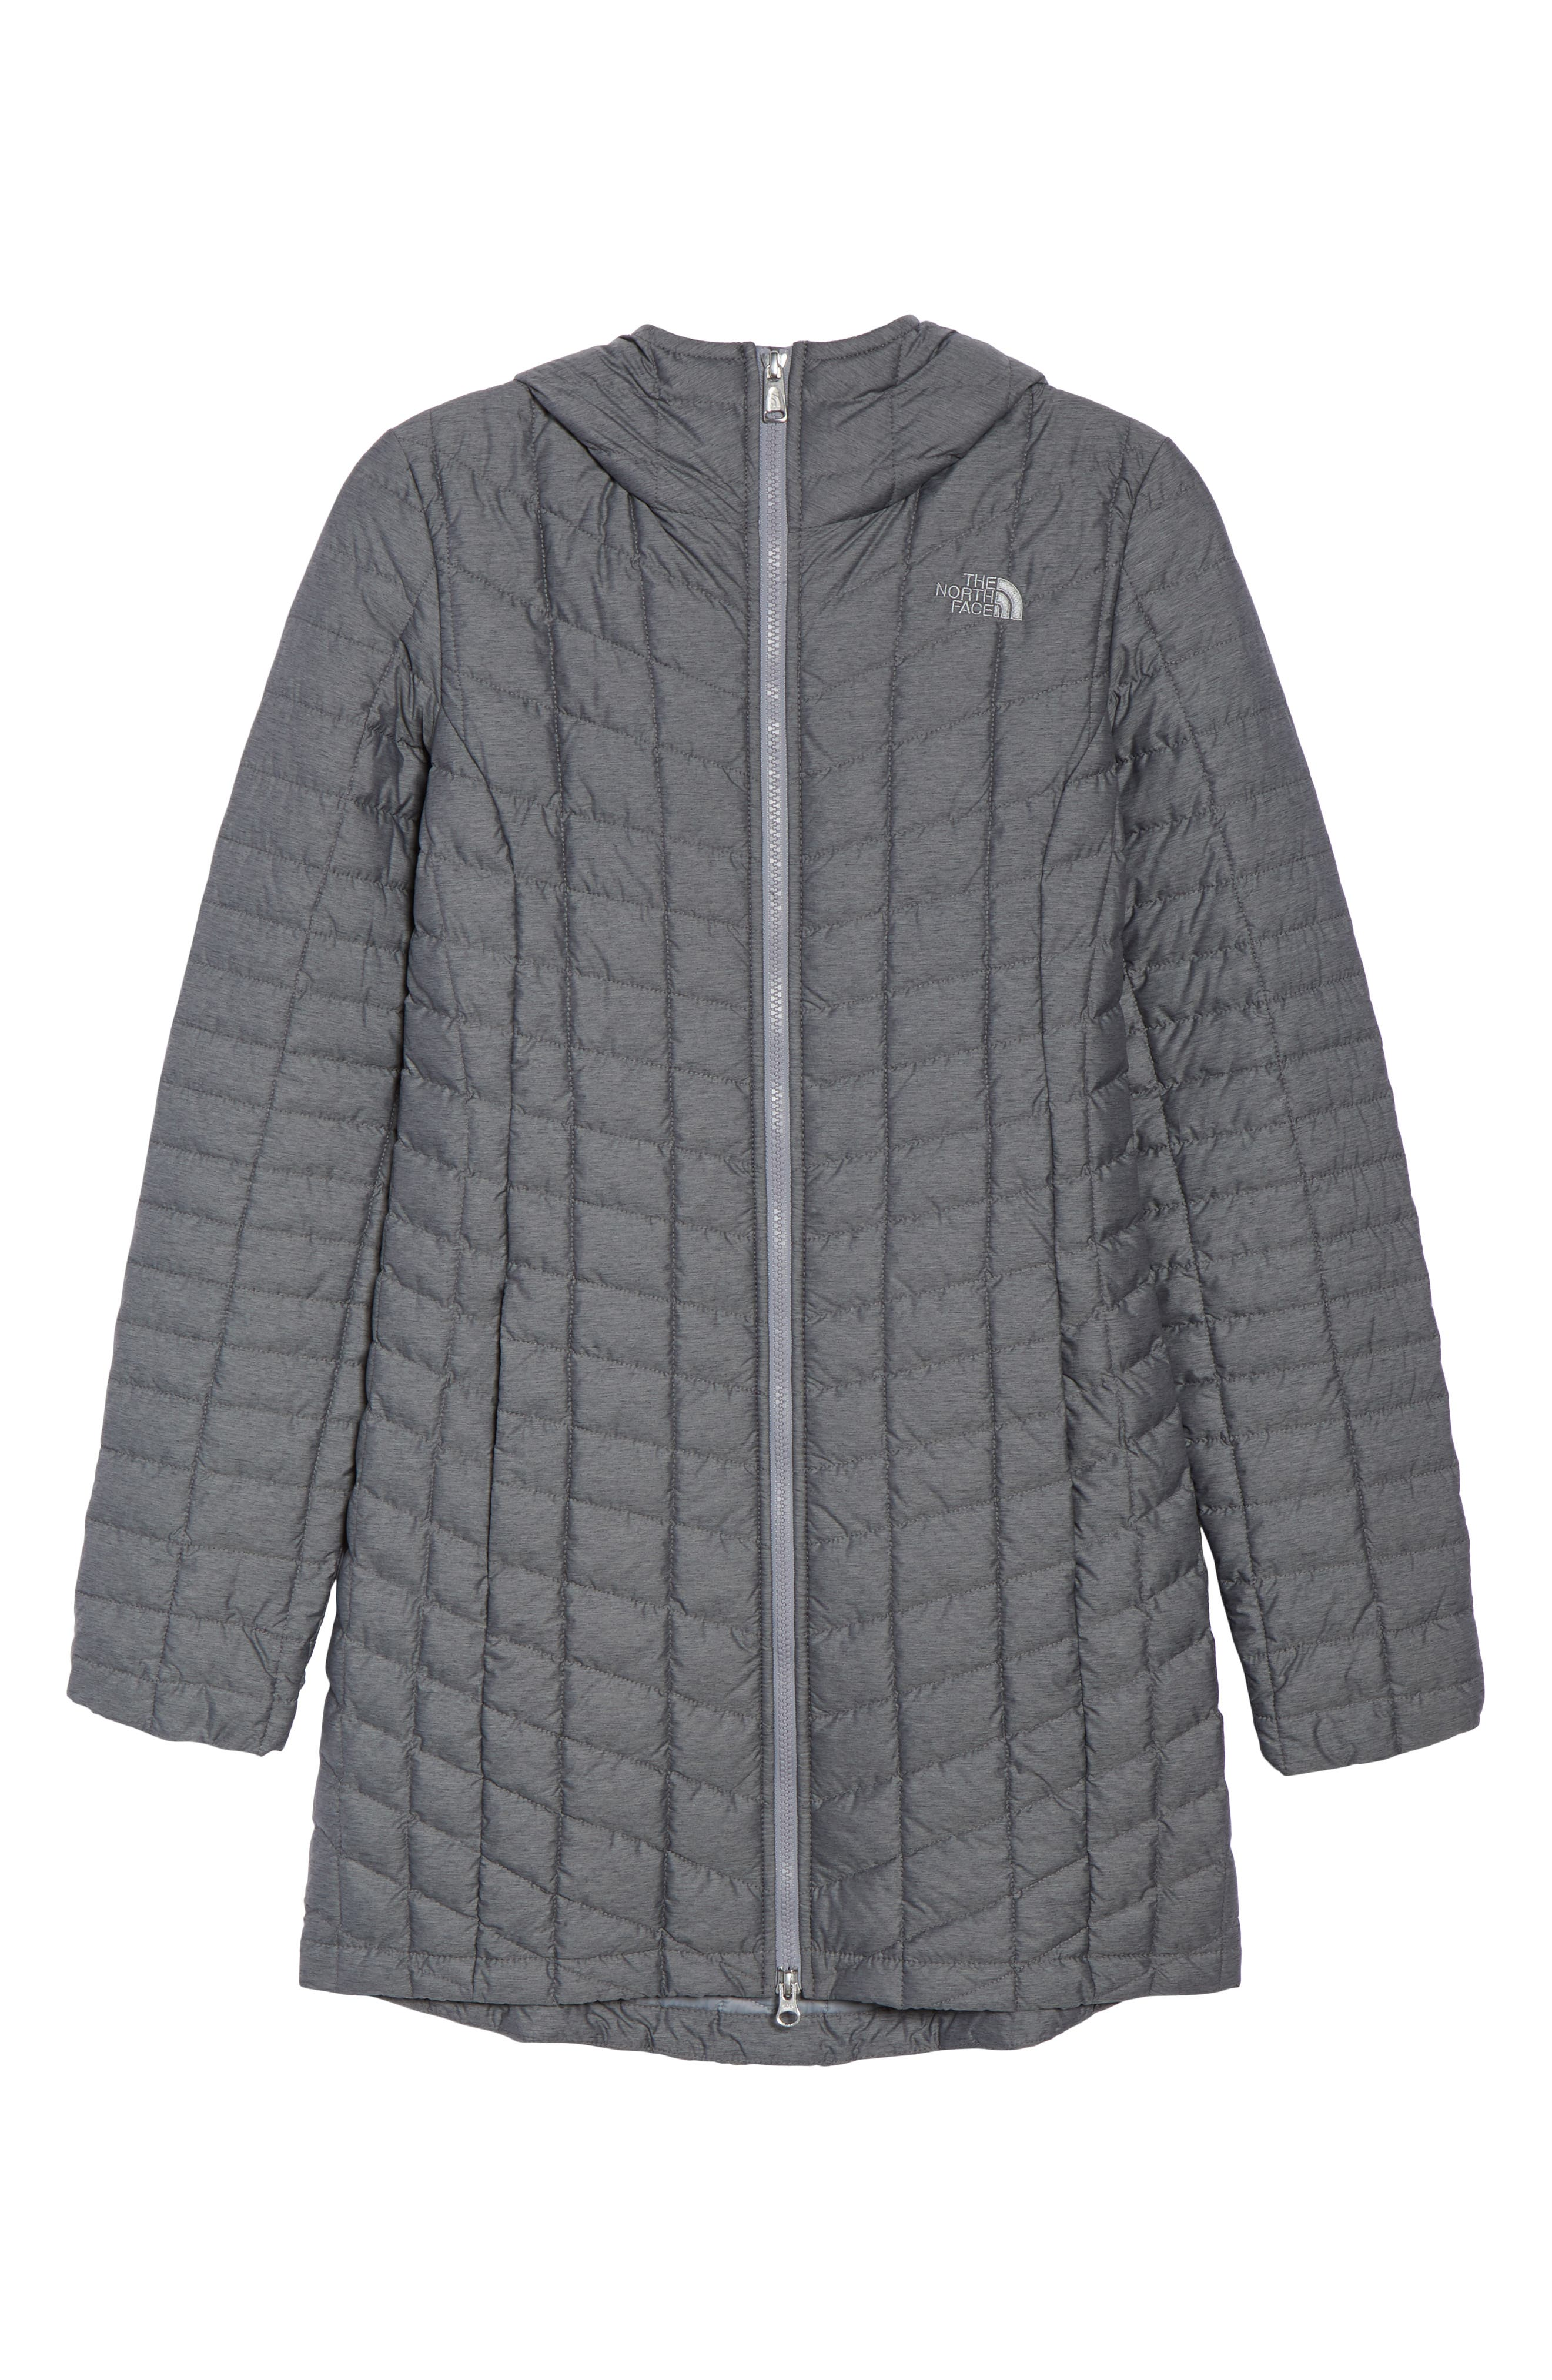 THE NORTH FACE,                             ThermoBall<sup>™</sup> Insulated Hooded Parka,                             Alternate thumbnail 6, color,                             033